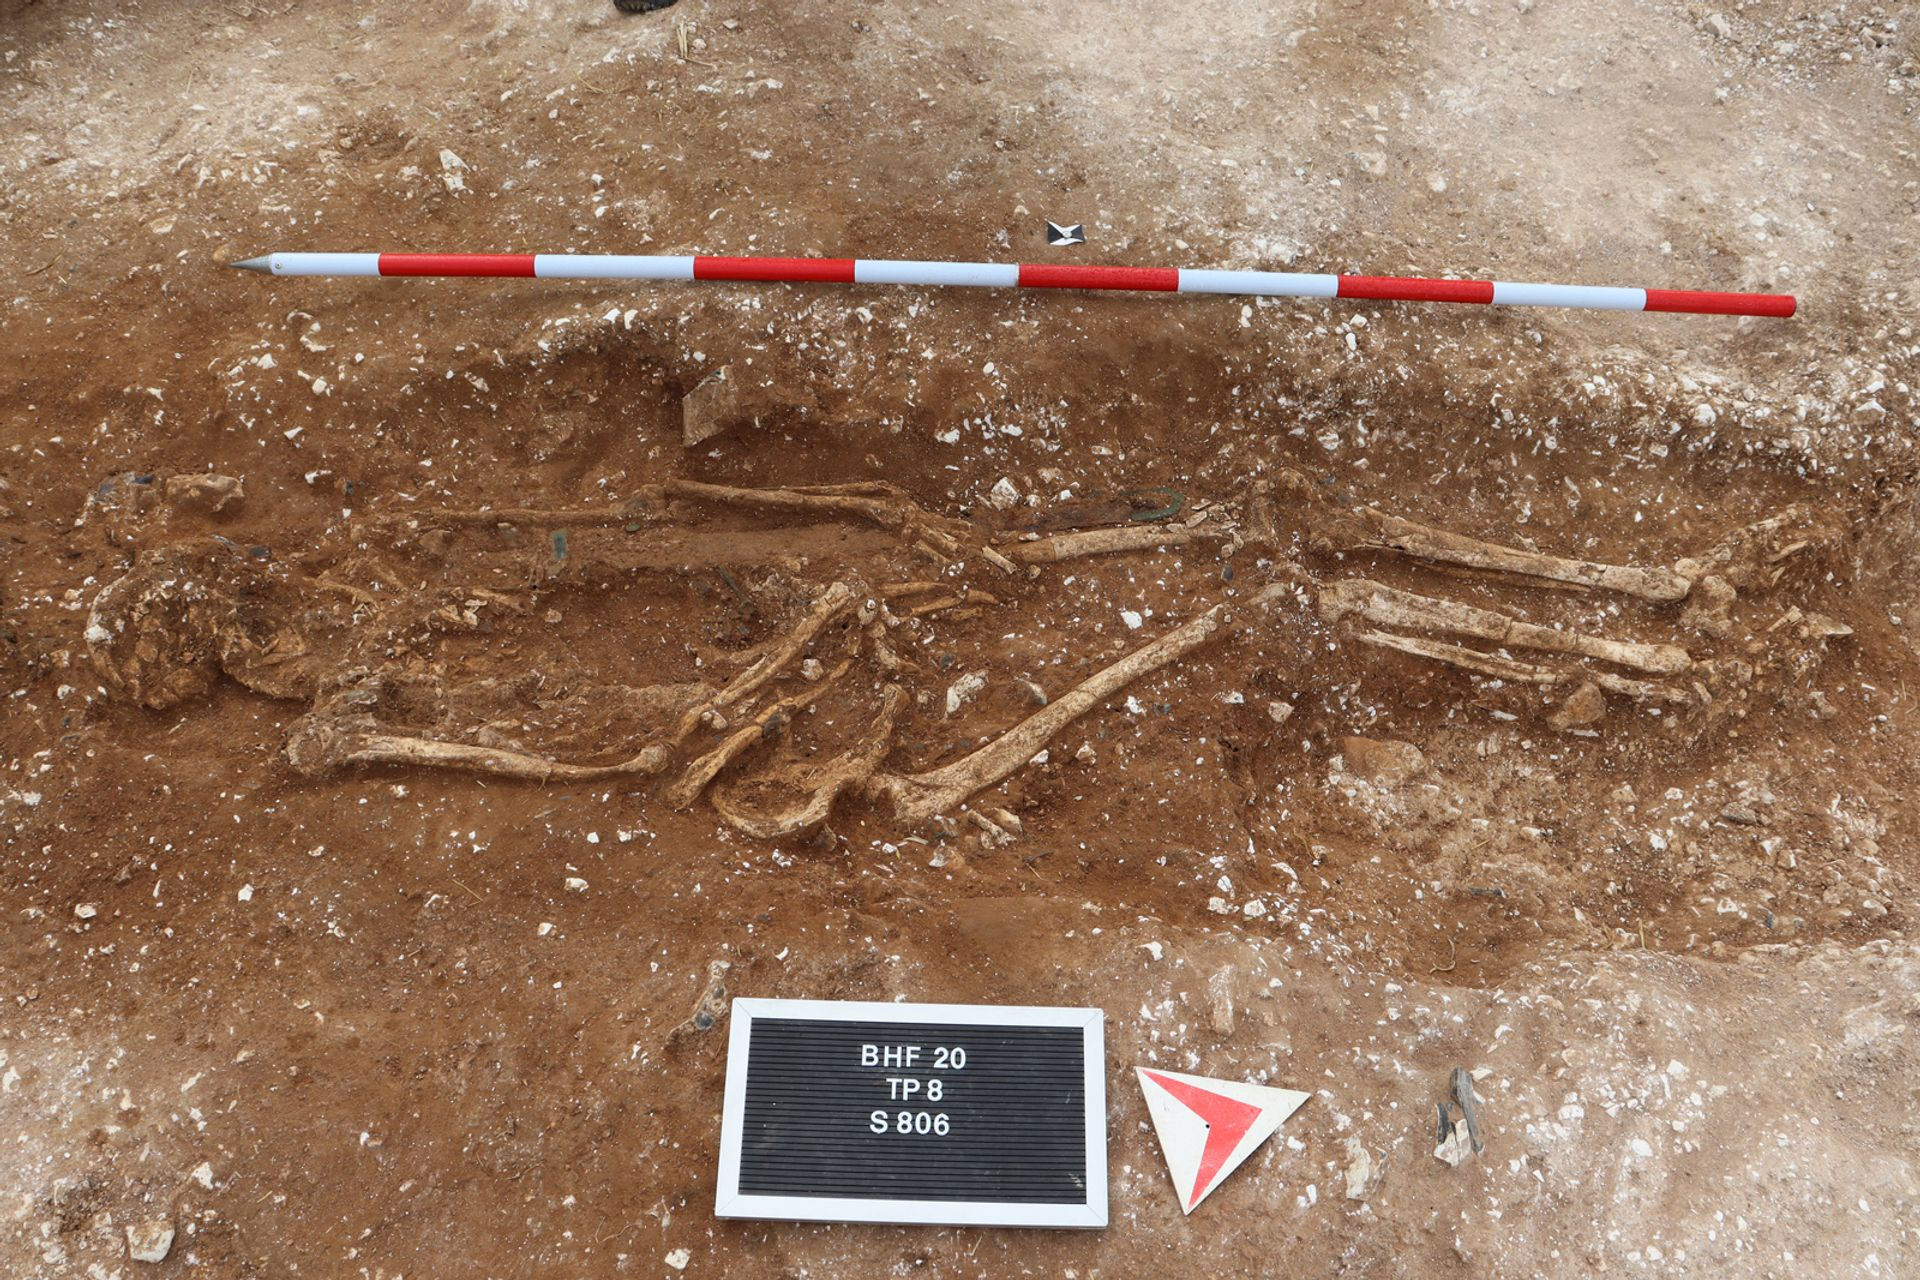 The remains of the 'Marlow Warlord' Courtesy of the University of Reading